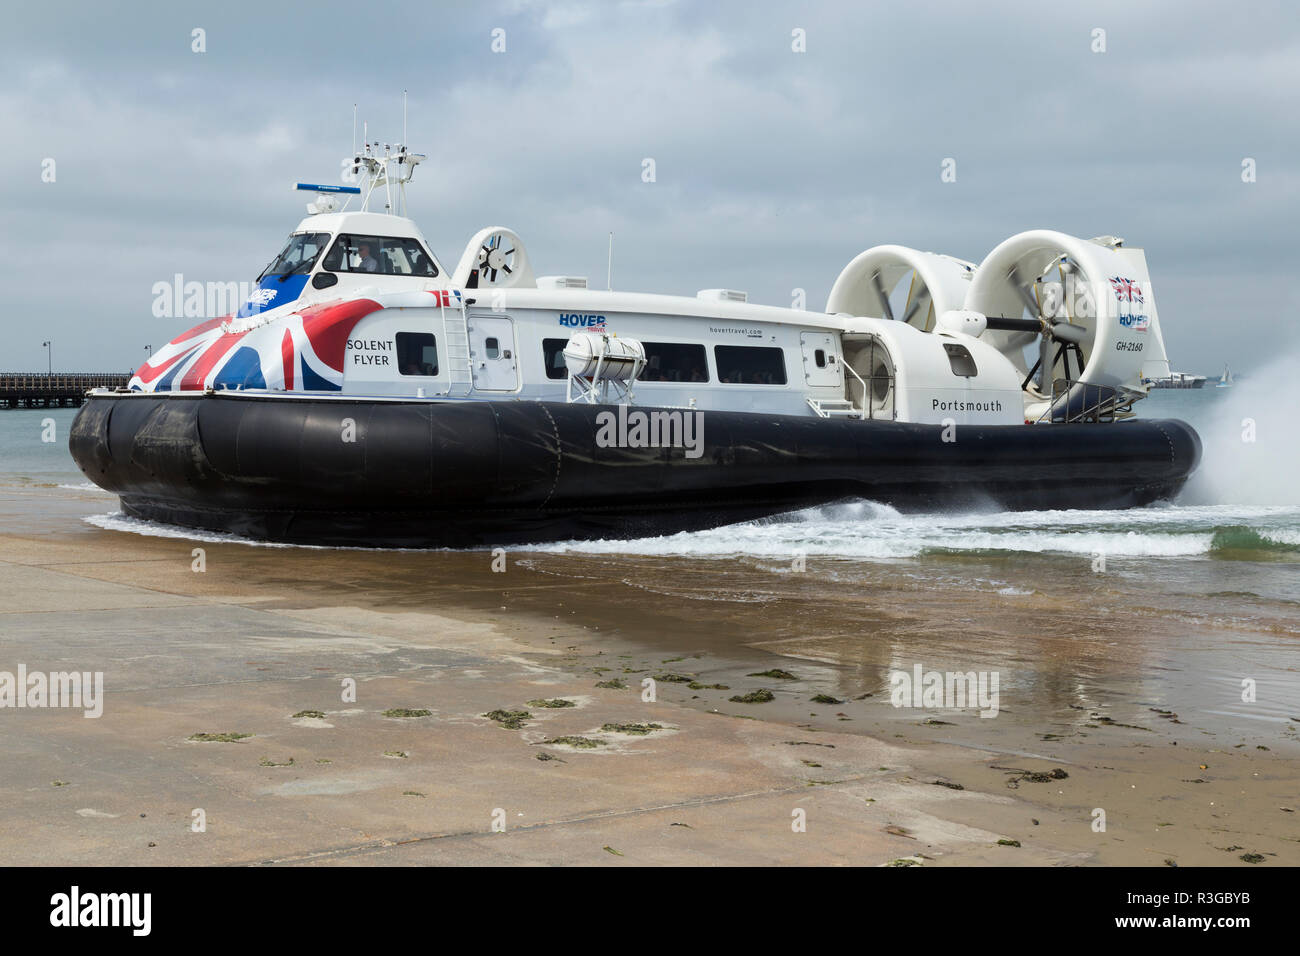 Hovercraft / Hover Craft 'The Solent Flyer' seen at Ryde on Isle of Wight / IofW / IoW. Service operates between Ryde & Southsea in Portsmouth UK (98) Stock Photo